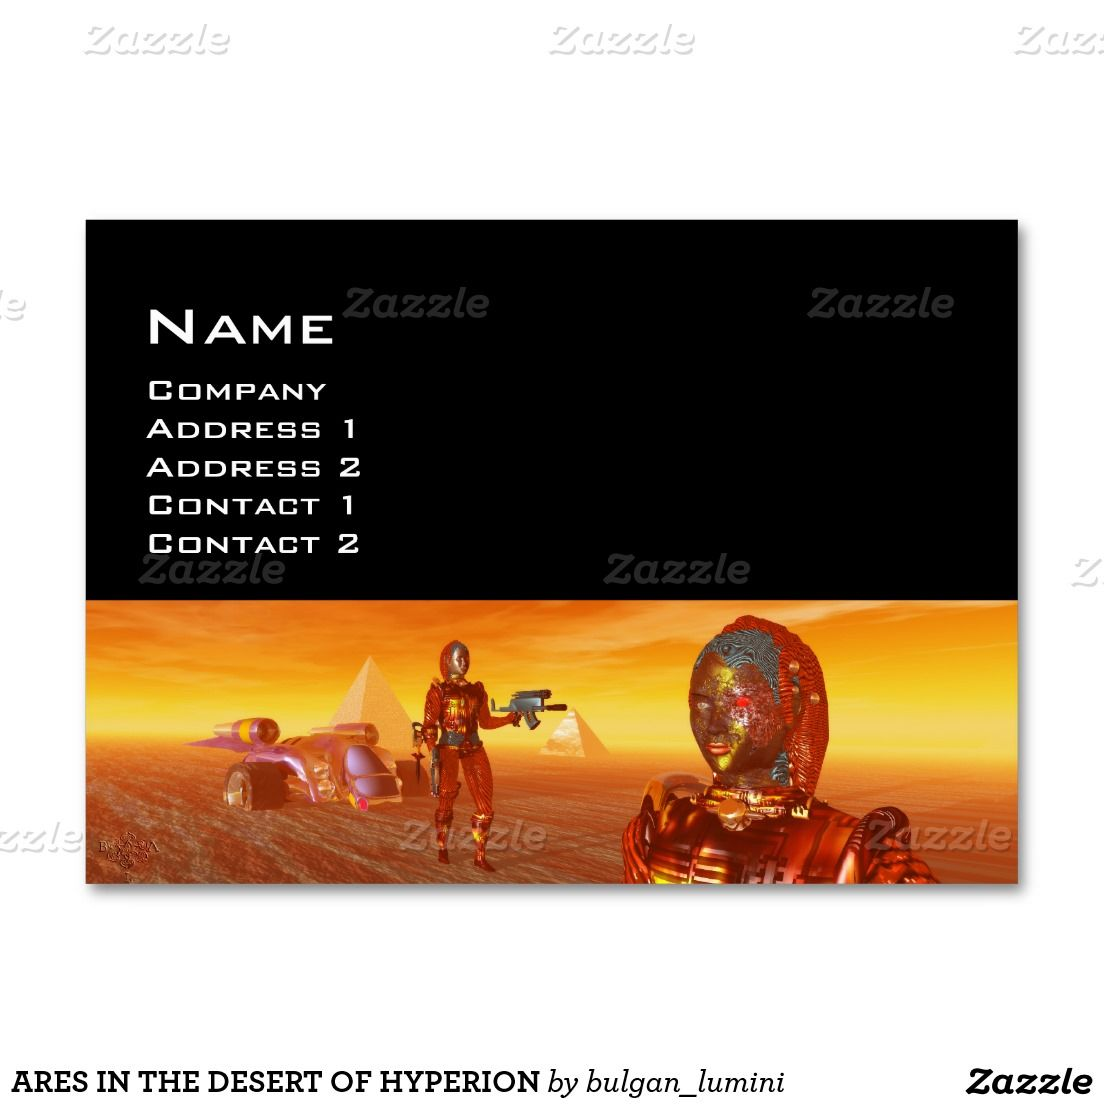 ARES IN THE DESERT OF HYPERION LARGE BUSINESS CARD